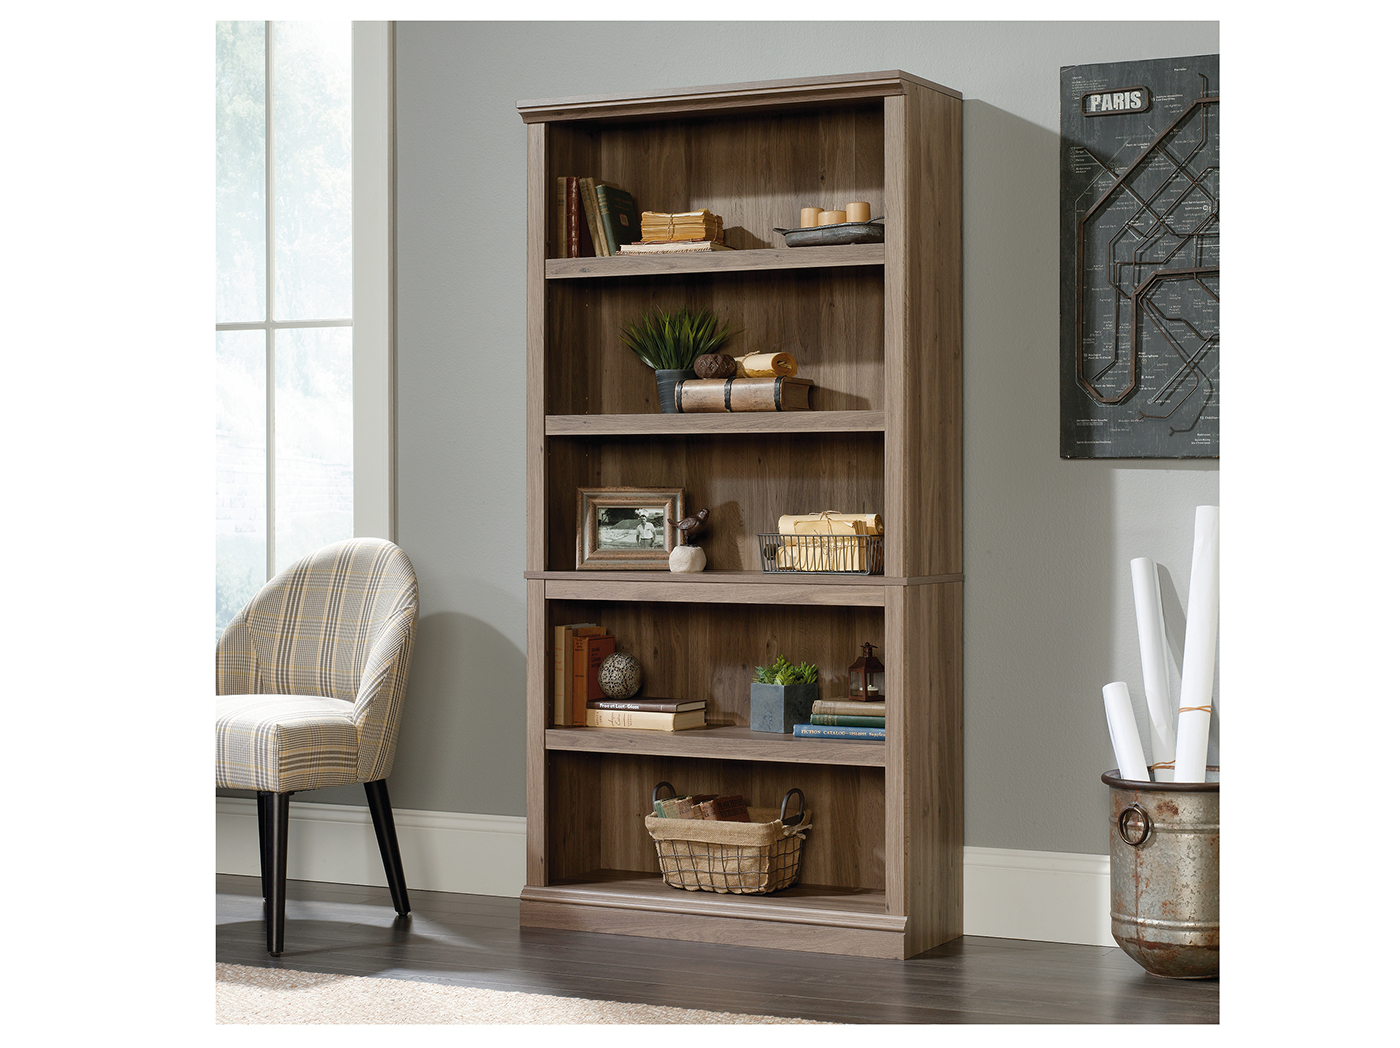 bookcase lane beautiful furniture com six home photo bookcases oak midas inspirations amazon barrister shelf double